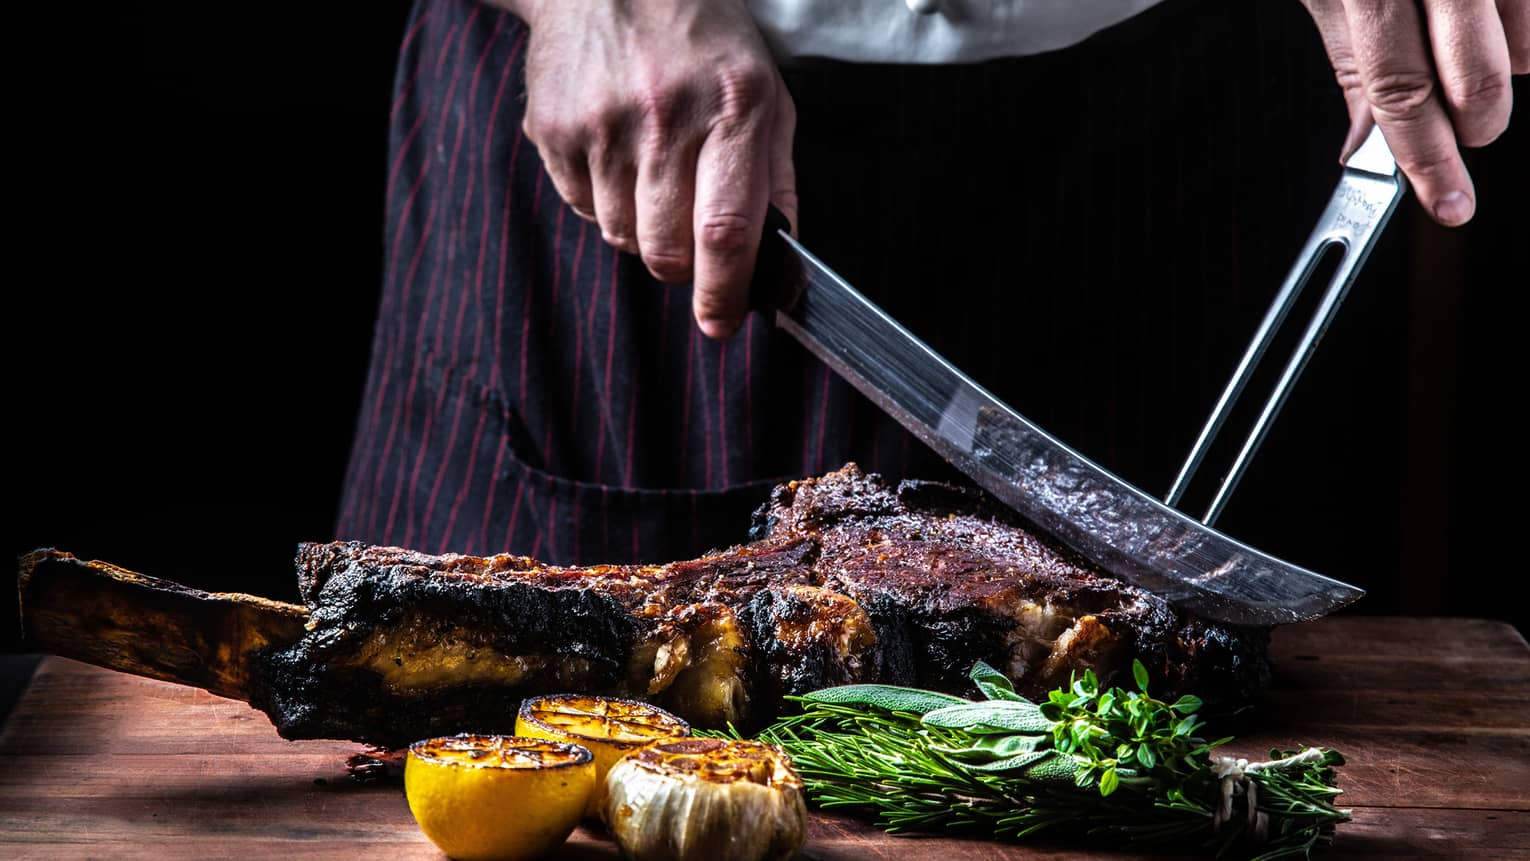 Close-up of chef slicing large rack of grilled meat, vegetables with butcher knives